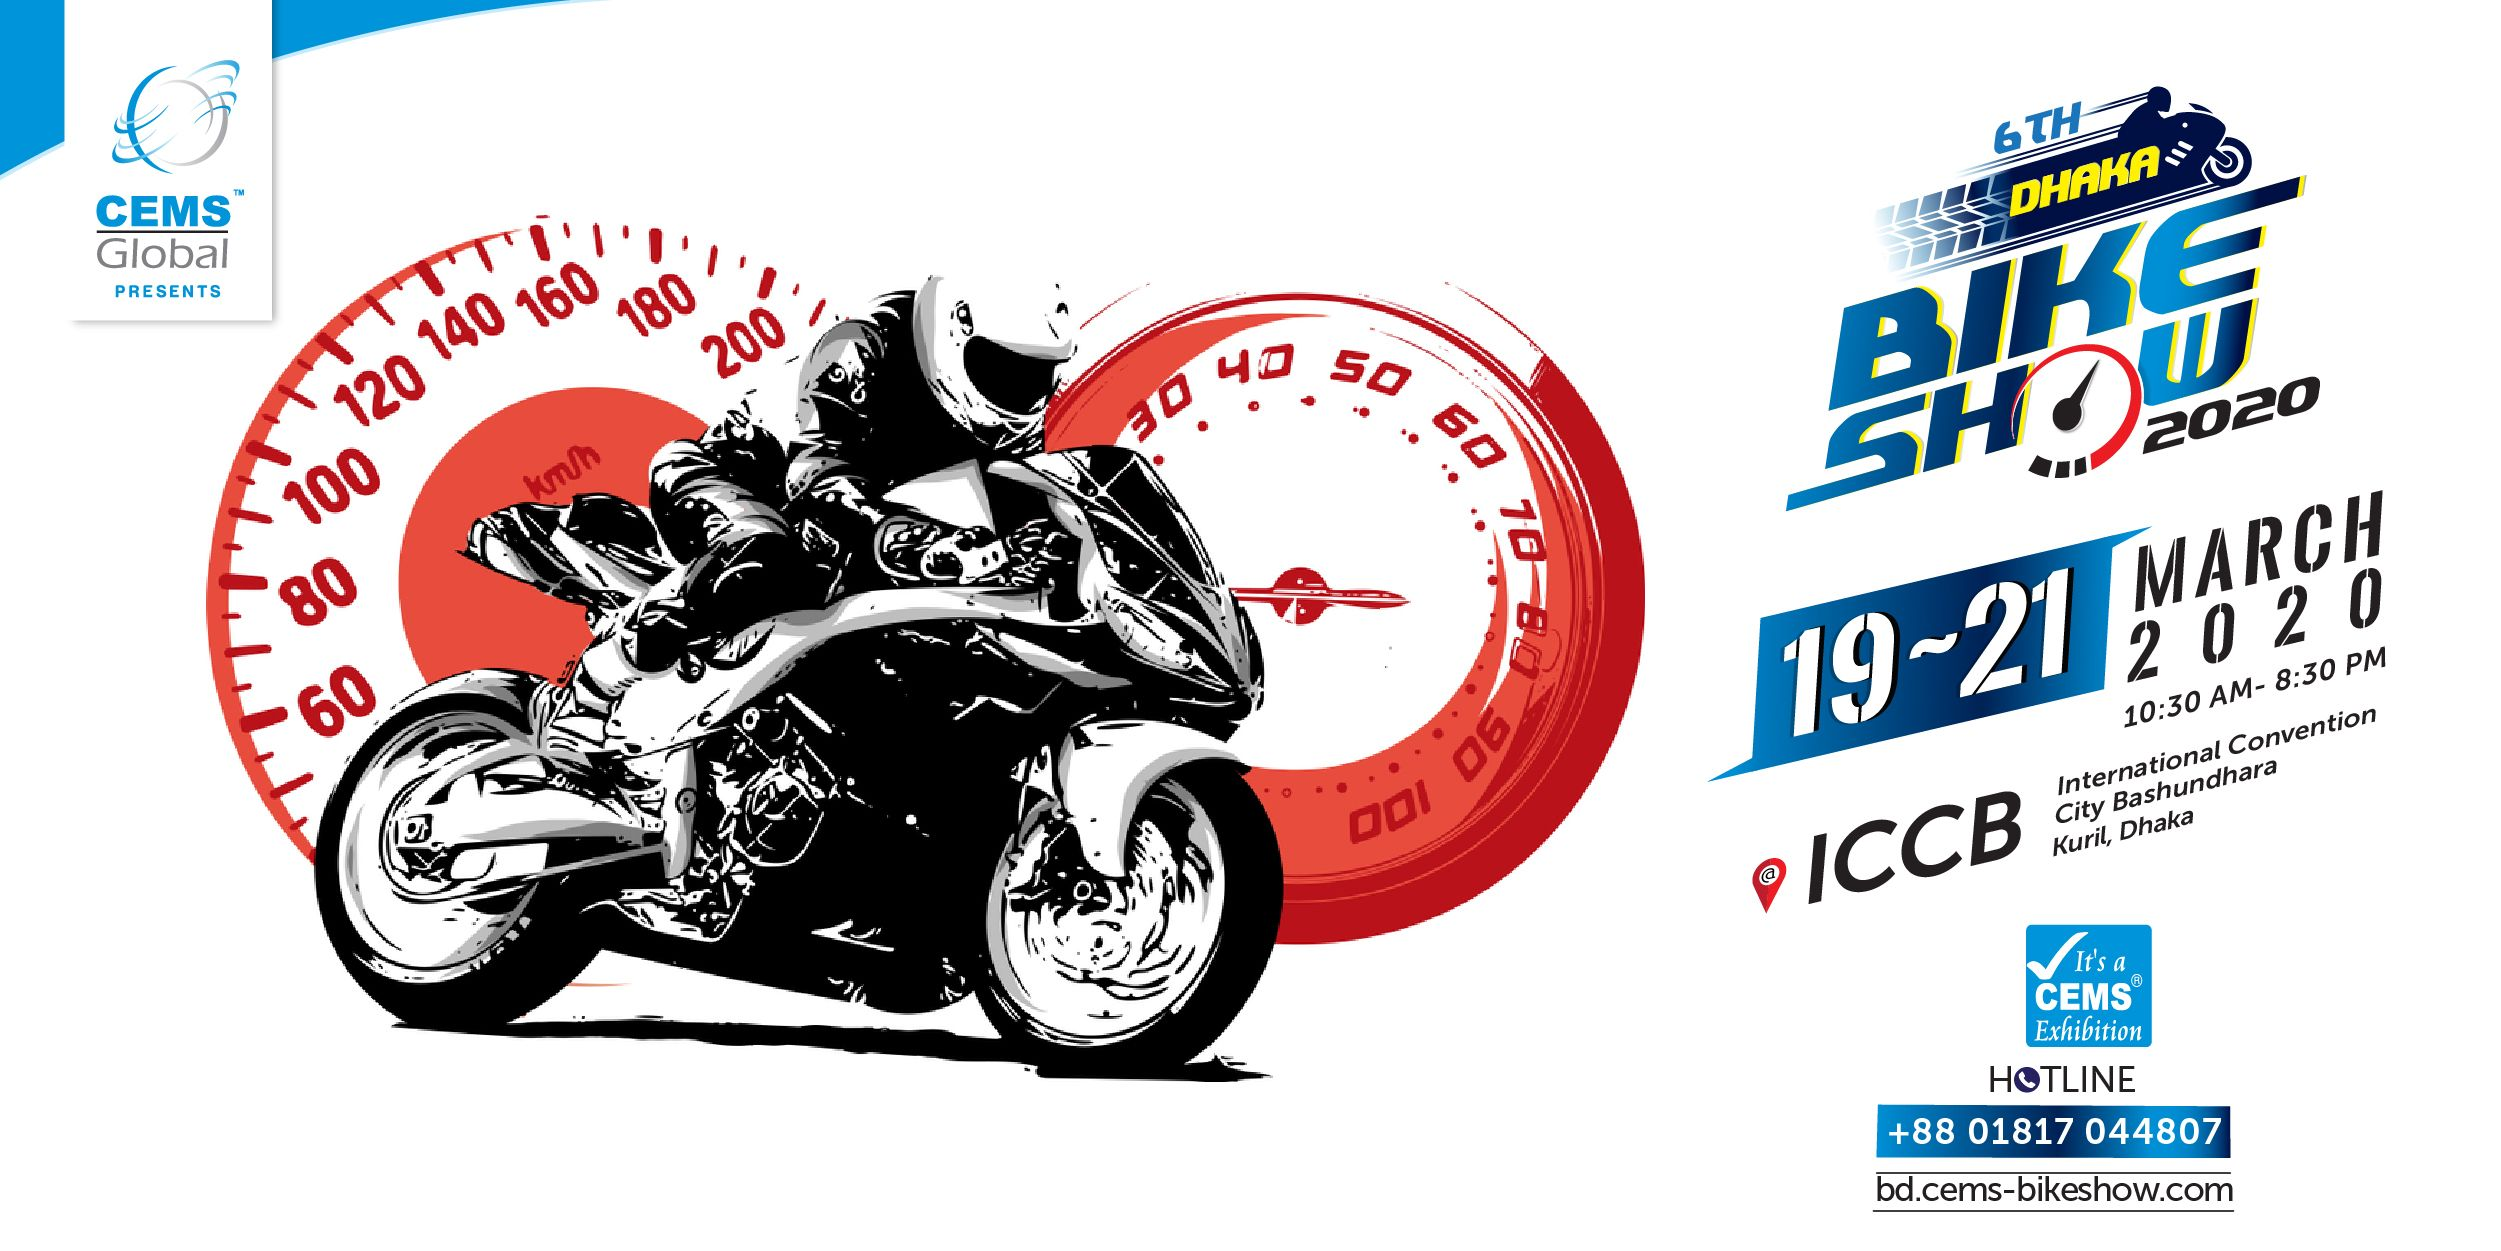 The Most Anticipated Dhaka Bike Show Is Coming Back Again 6th